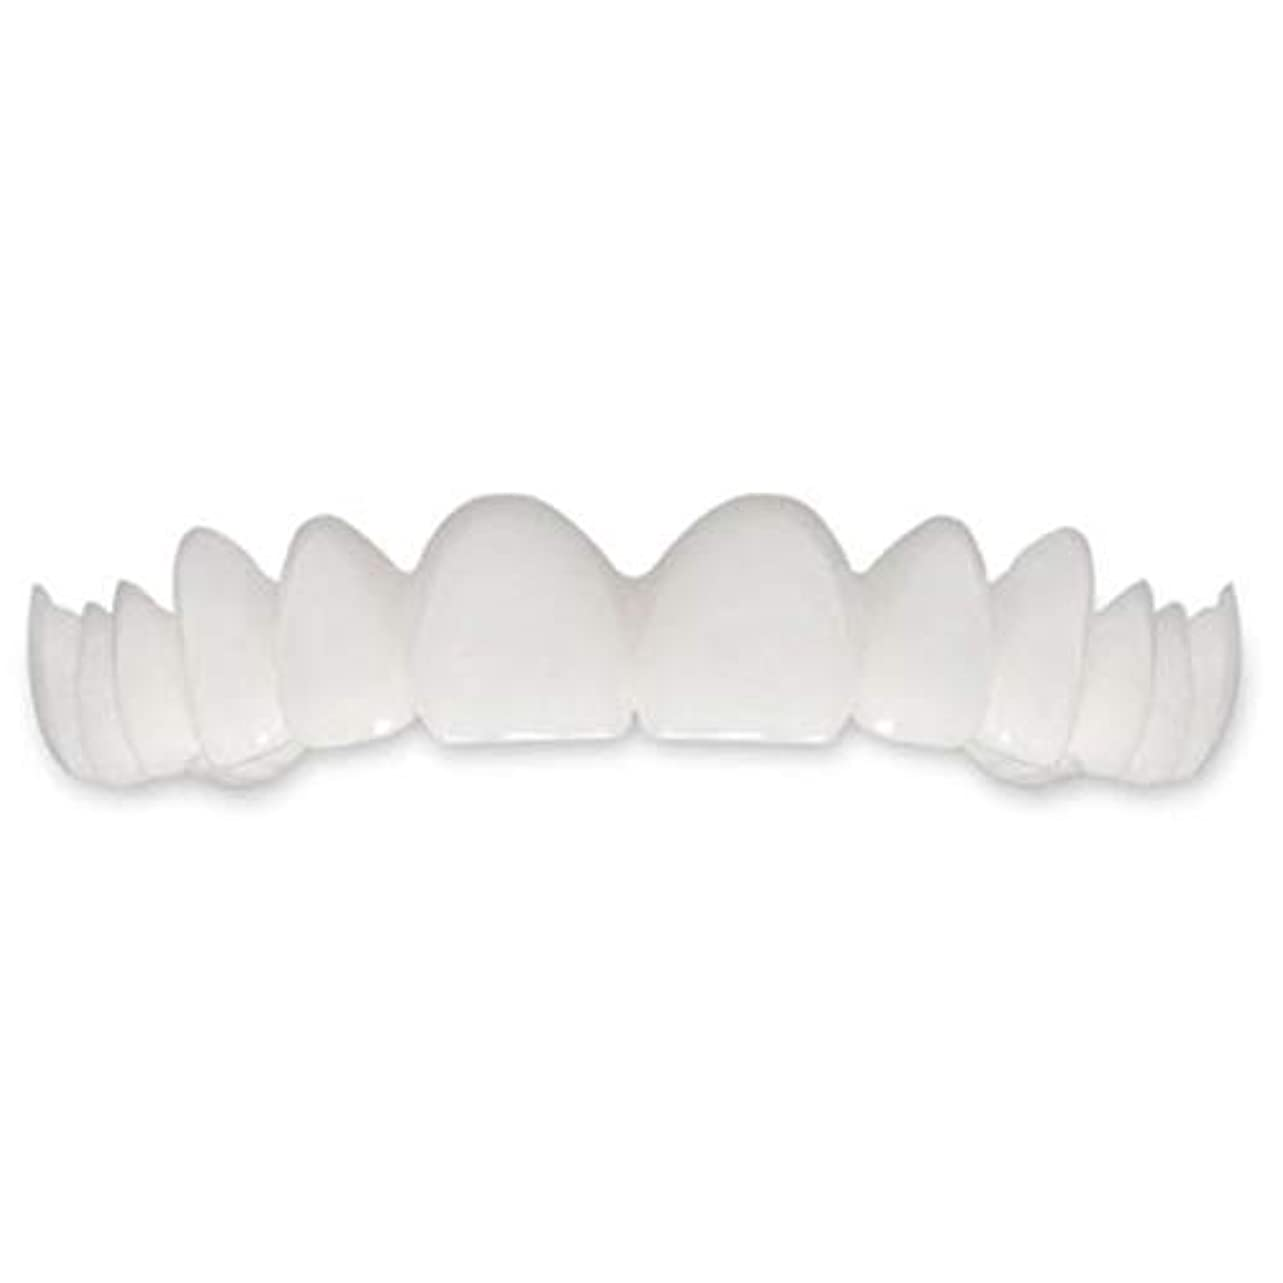 飢饉感謝するチャレンジTooth Instant Perfect Smile Flex Teeth Whitening Smile False Teeth Cover-ホワイト